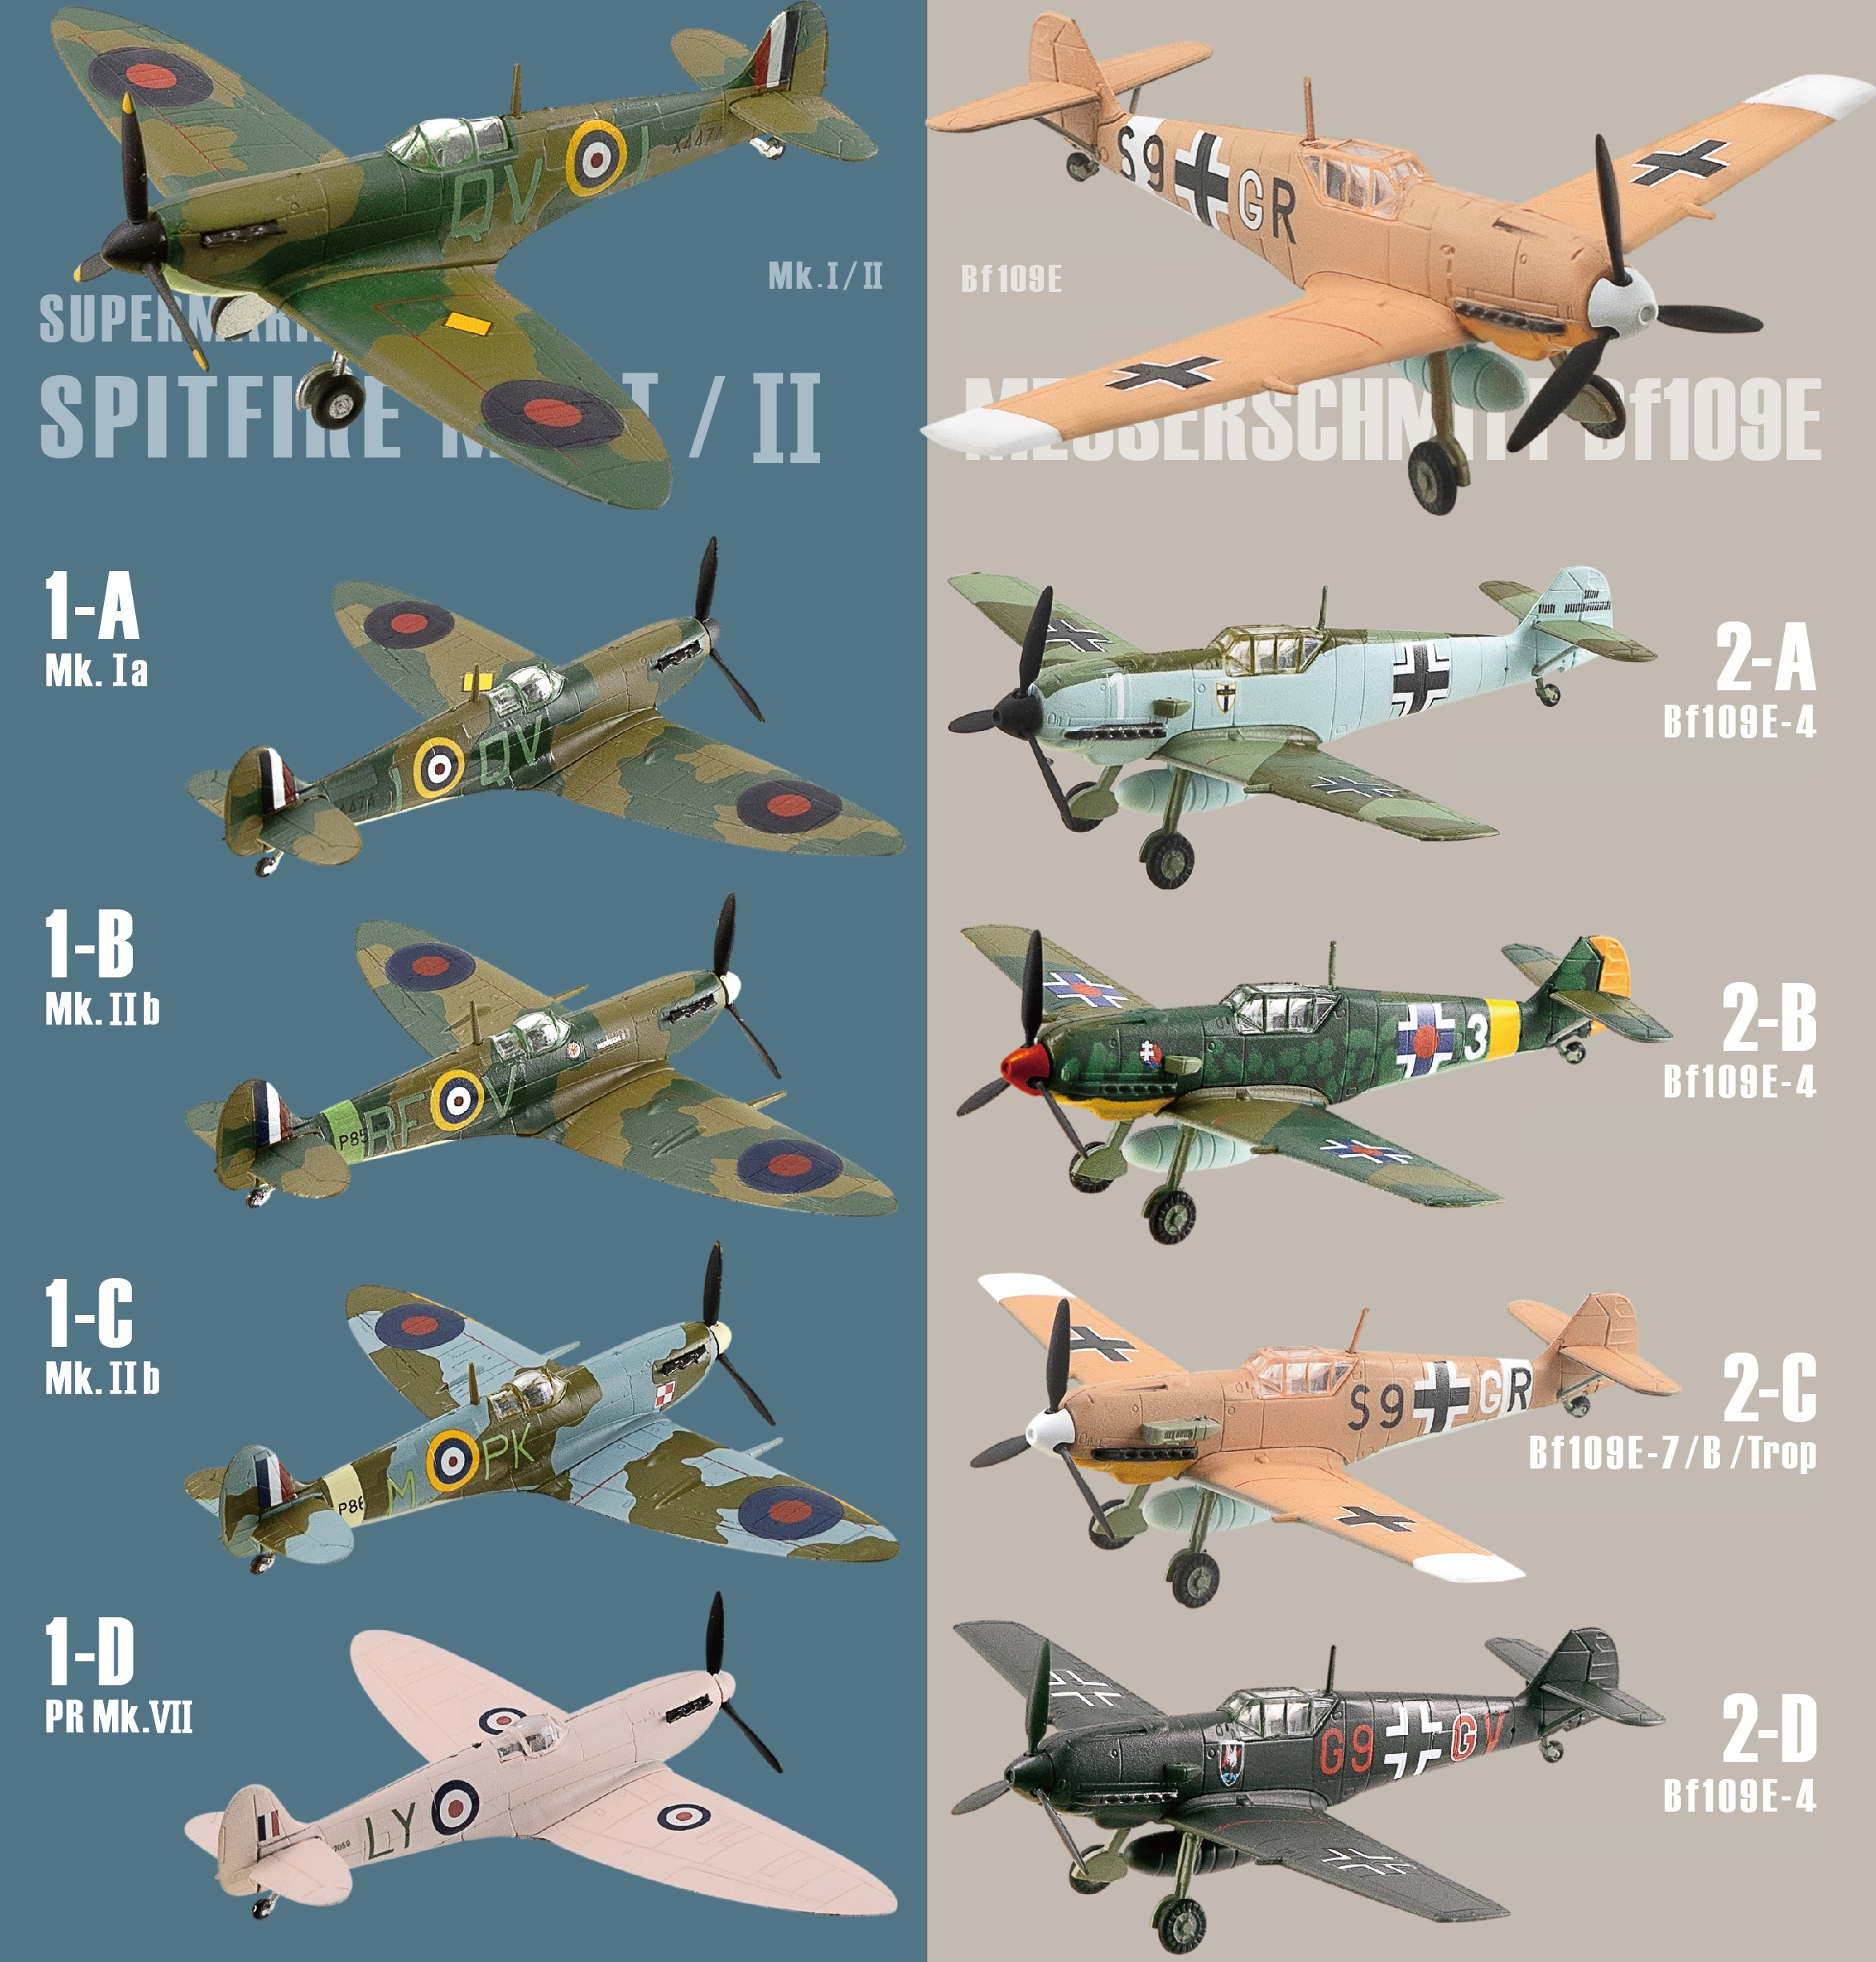 F-Toys 1/144 Wing Kit Collection Versus Series 15 Spitfire Mk.I/II Vs. Messerschmitt Bf109E,10-Pack Box with all 8 Varieties + 2 Secrets